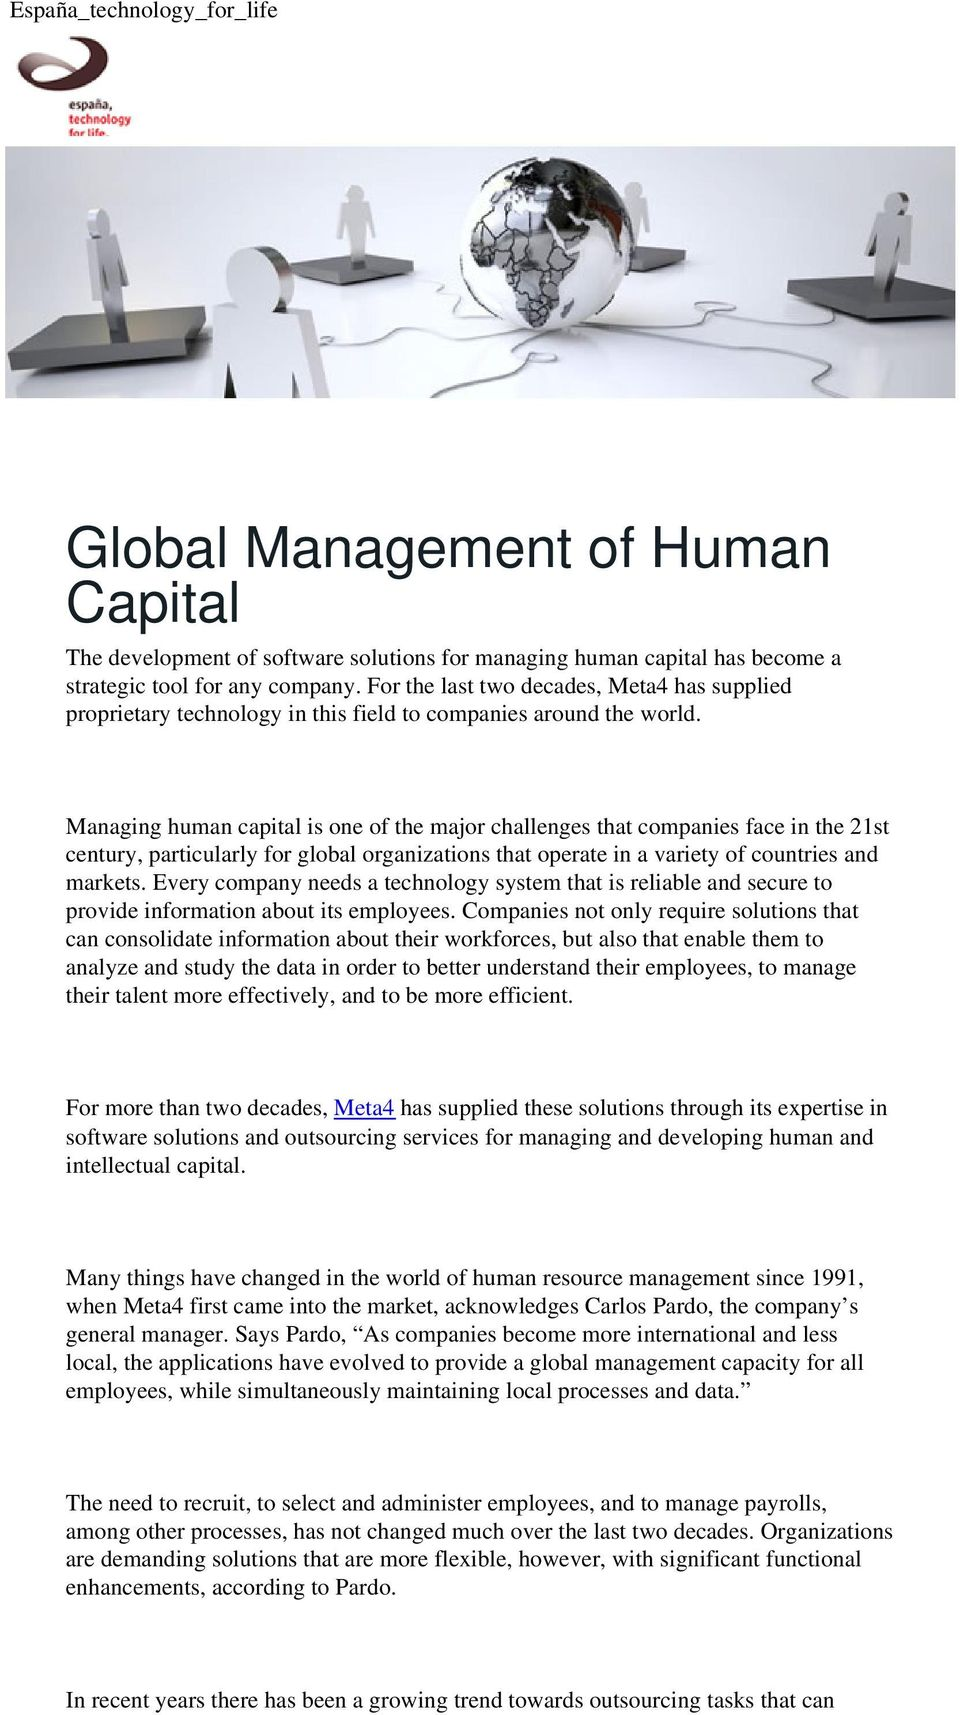 Managing human capital is one of the major challenges that companies face in the 21st century, particularly for global organizations that operate in a variety of countries and markets.